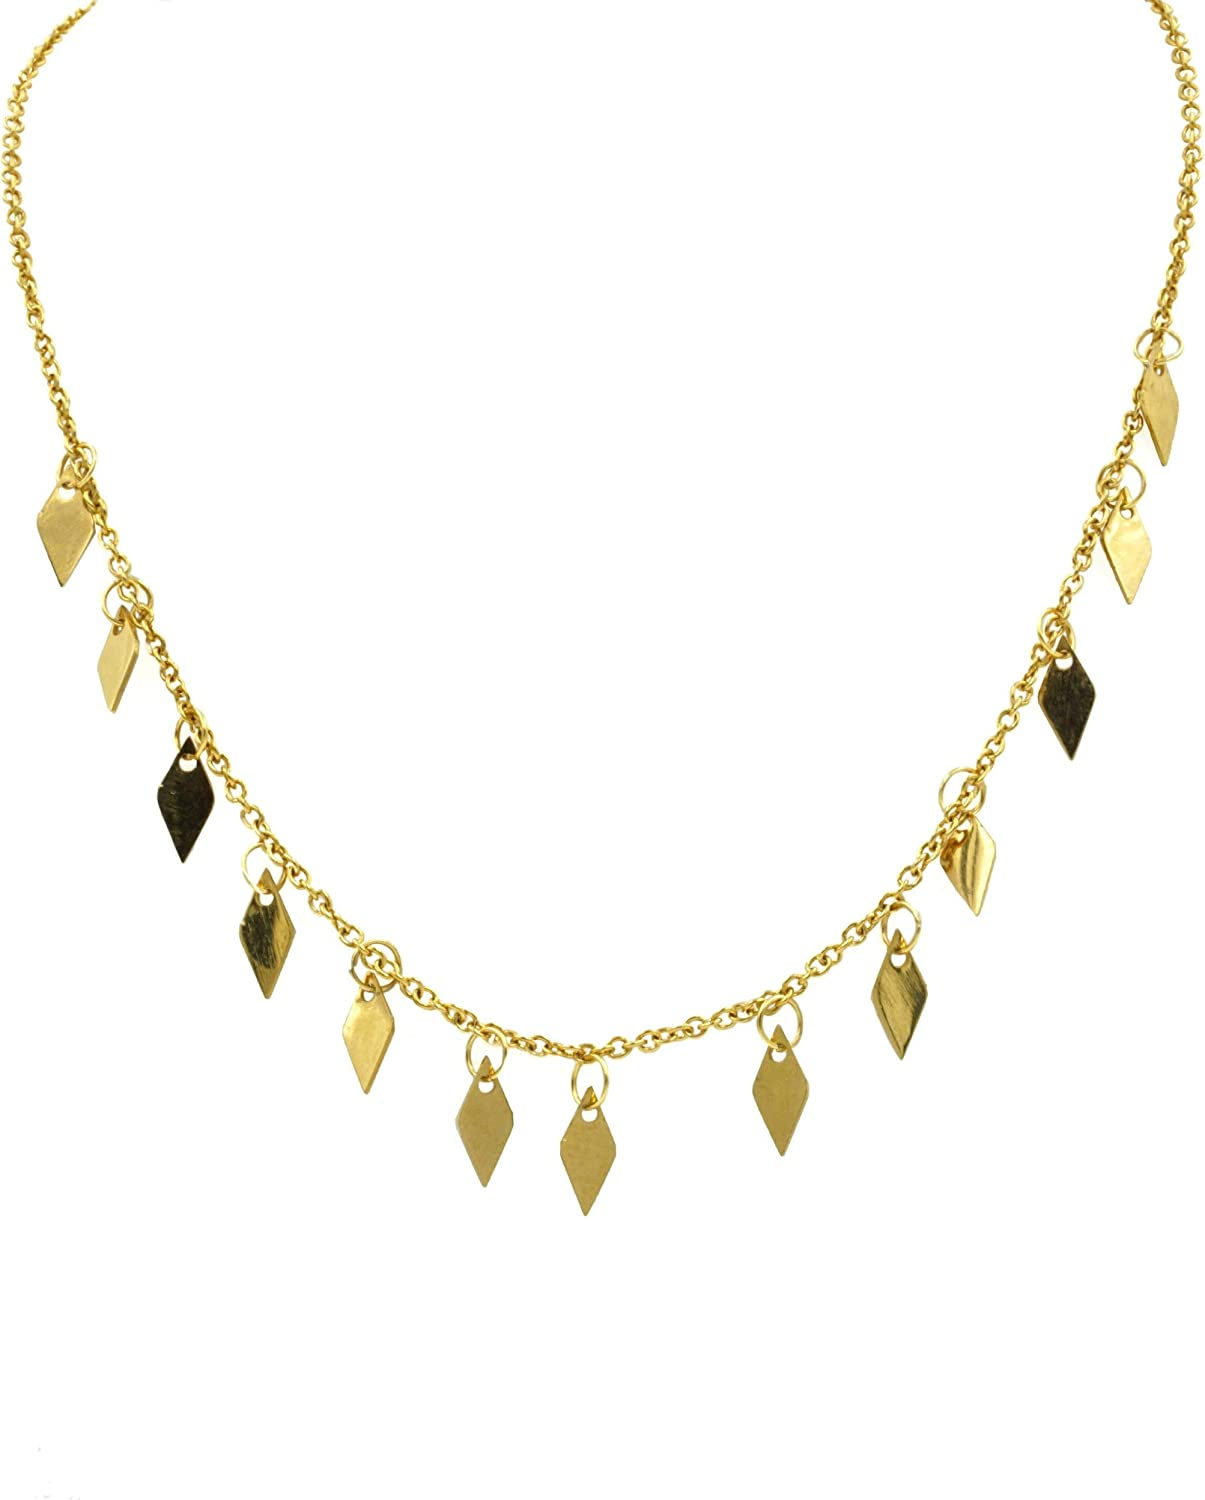 Kinsley Armelle Goddess Collection - Brynlee Necklace